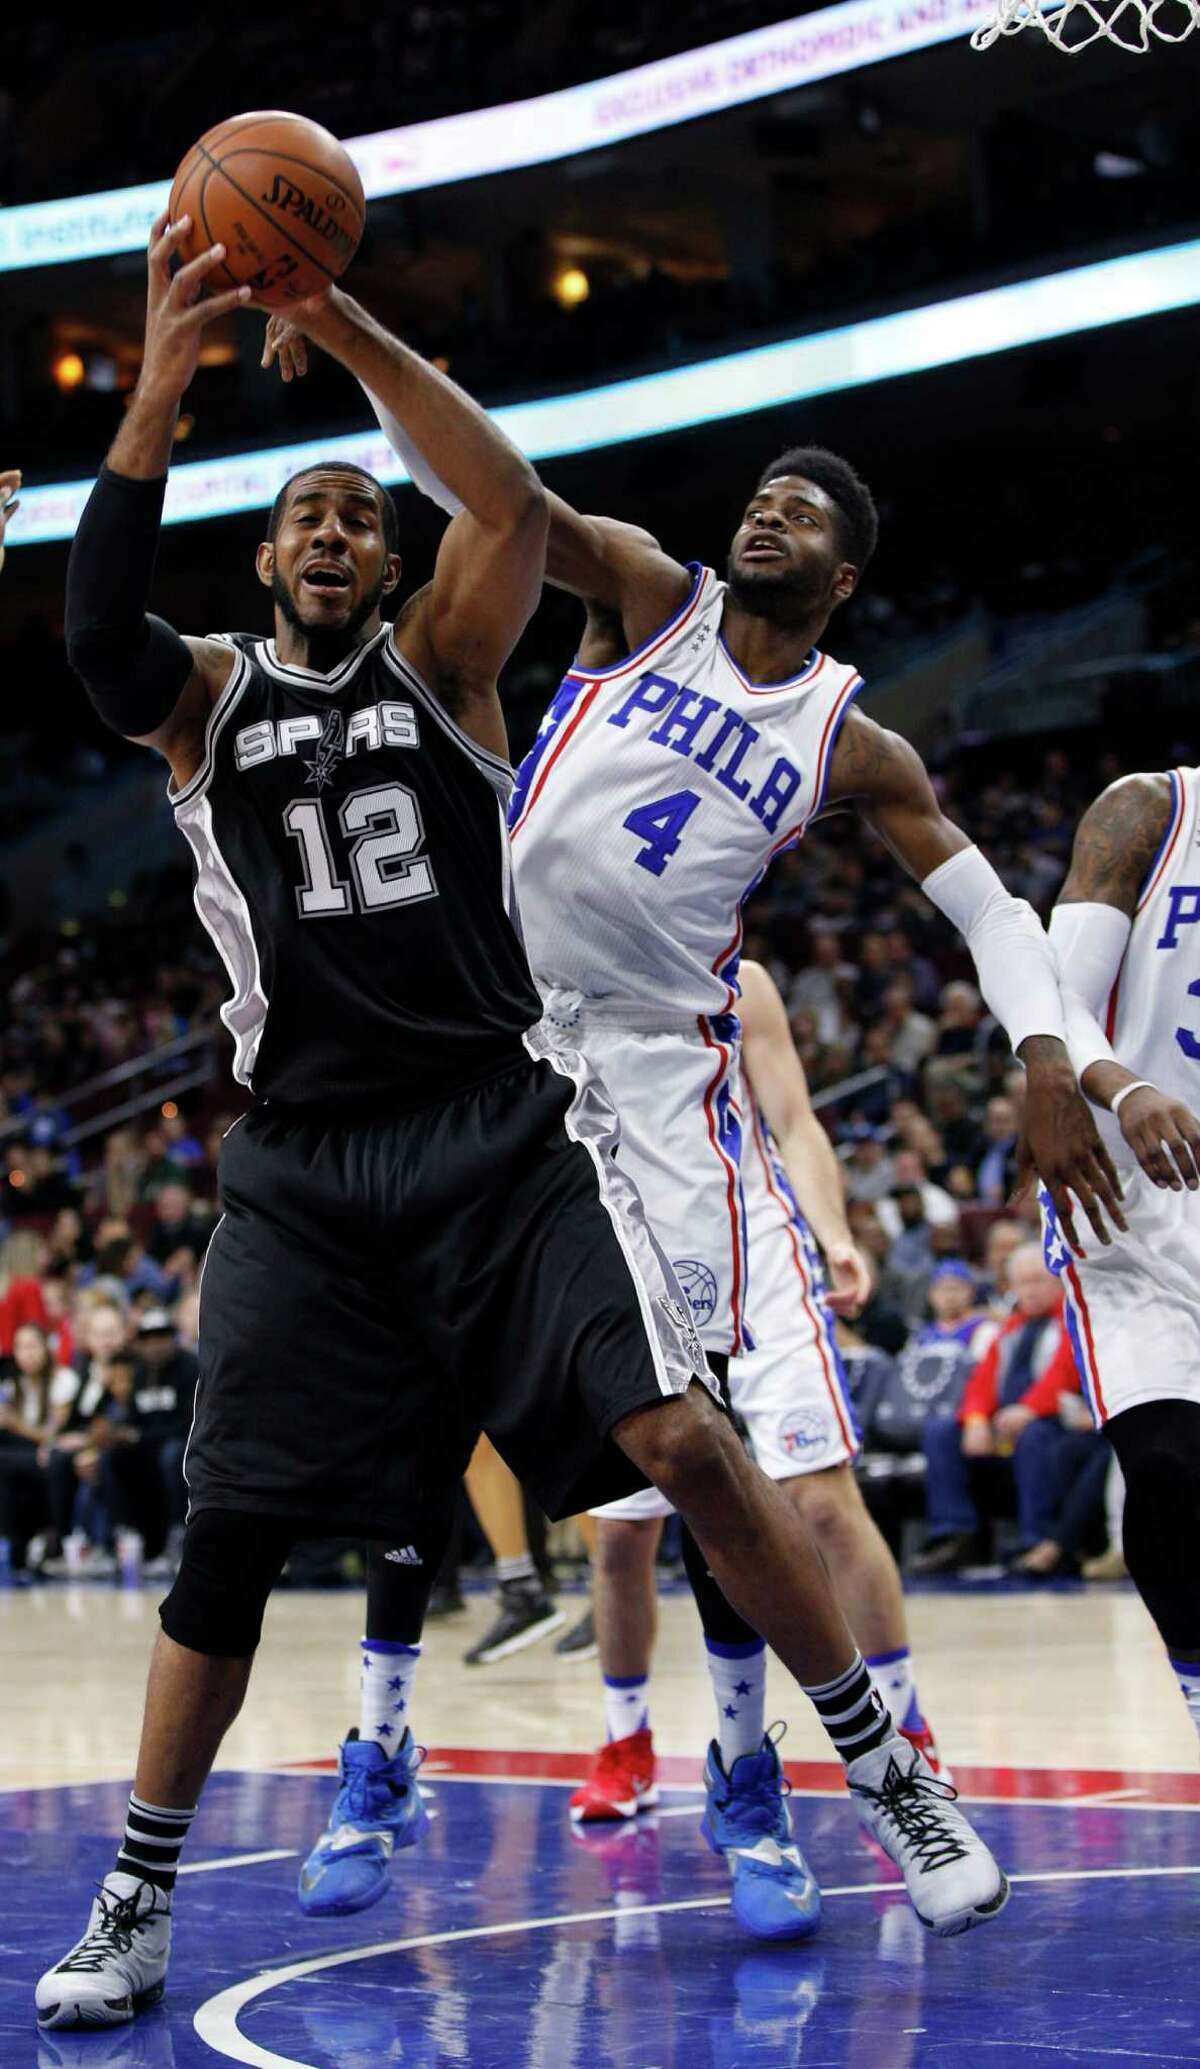 2598 x 4477~~$~~San Antonio Spurs' LaMarcus Aldridge, left, reacts as Philadelphia 76ers' Nerlens Noel, right, reaches from behind for the ball during the first half of an NBA basketball game, Monday, Dec. 7, 2015, in Philadelphia.